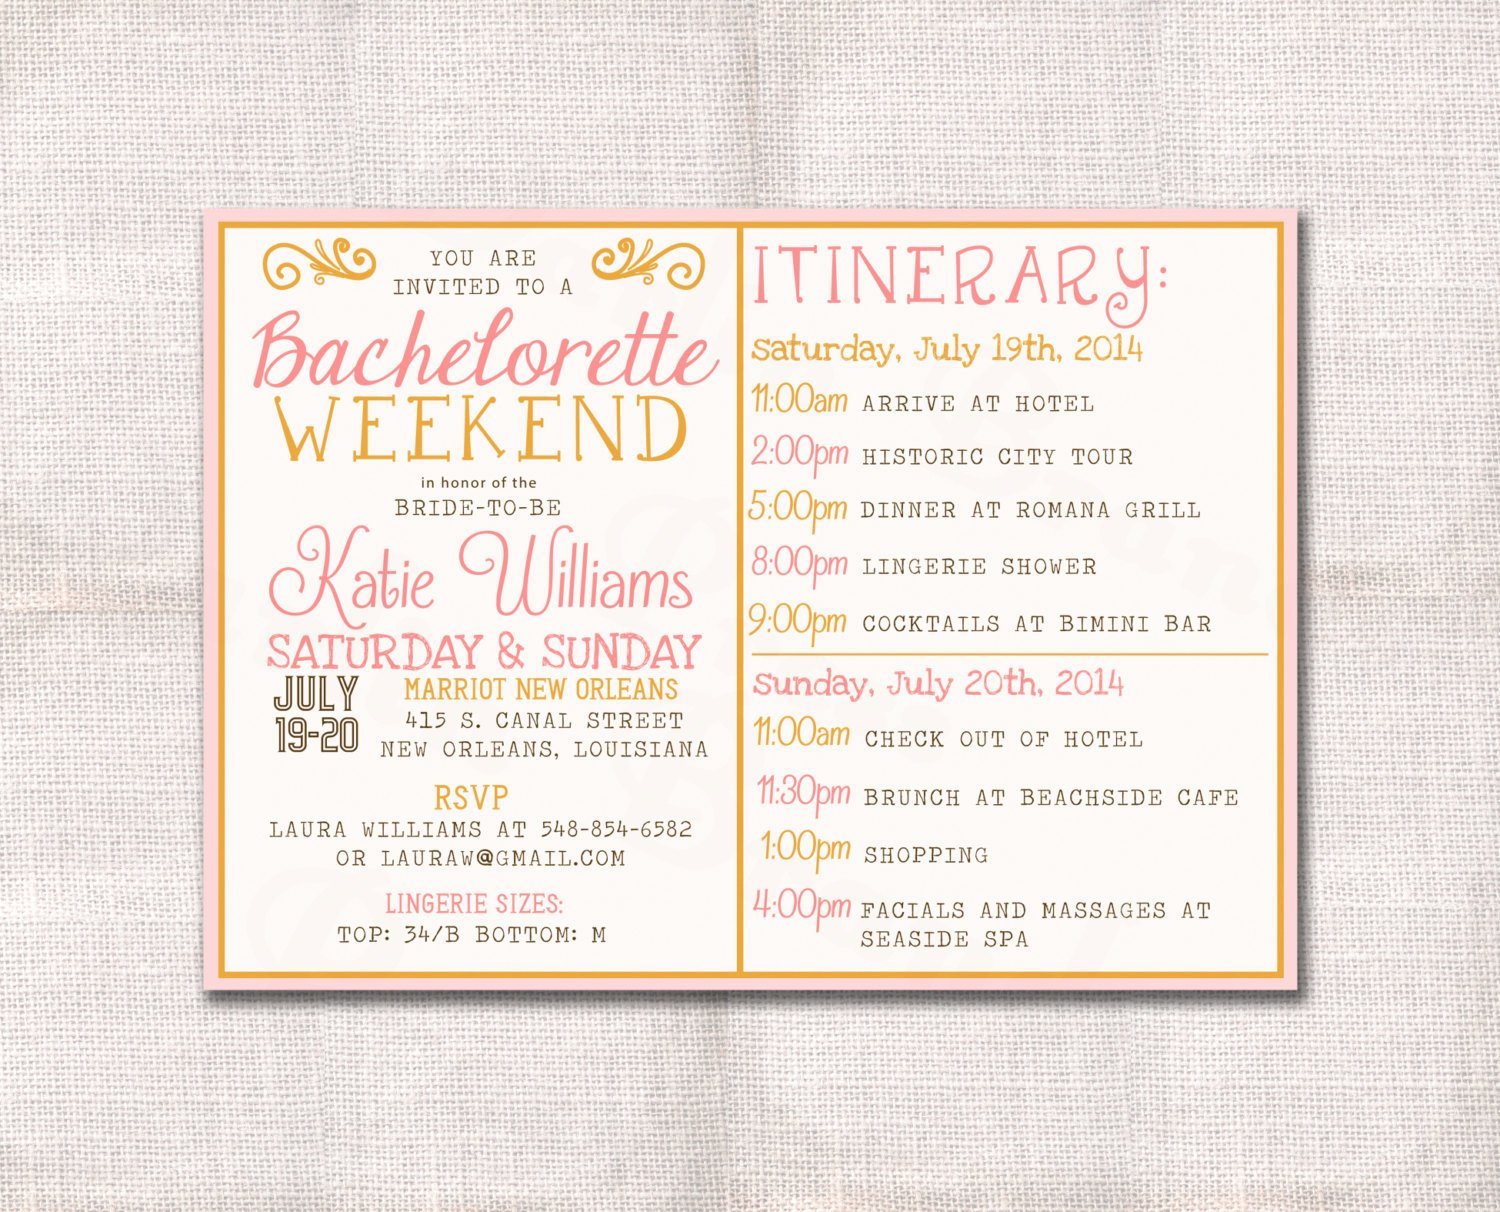 bachelorette party weekend invitation